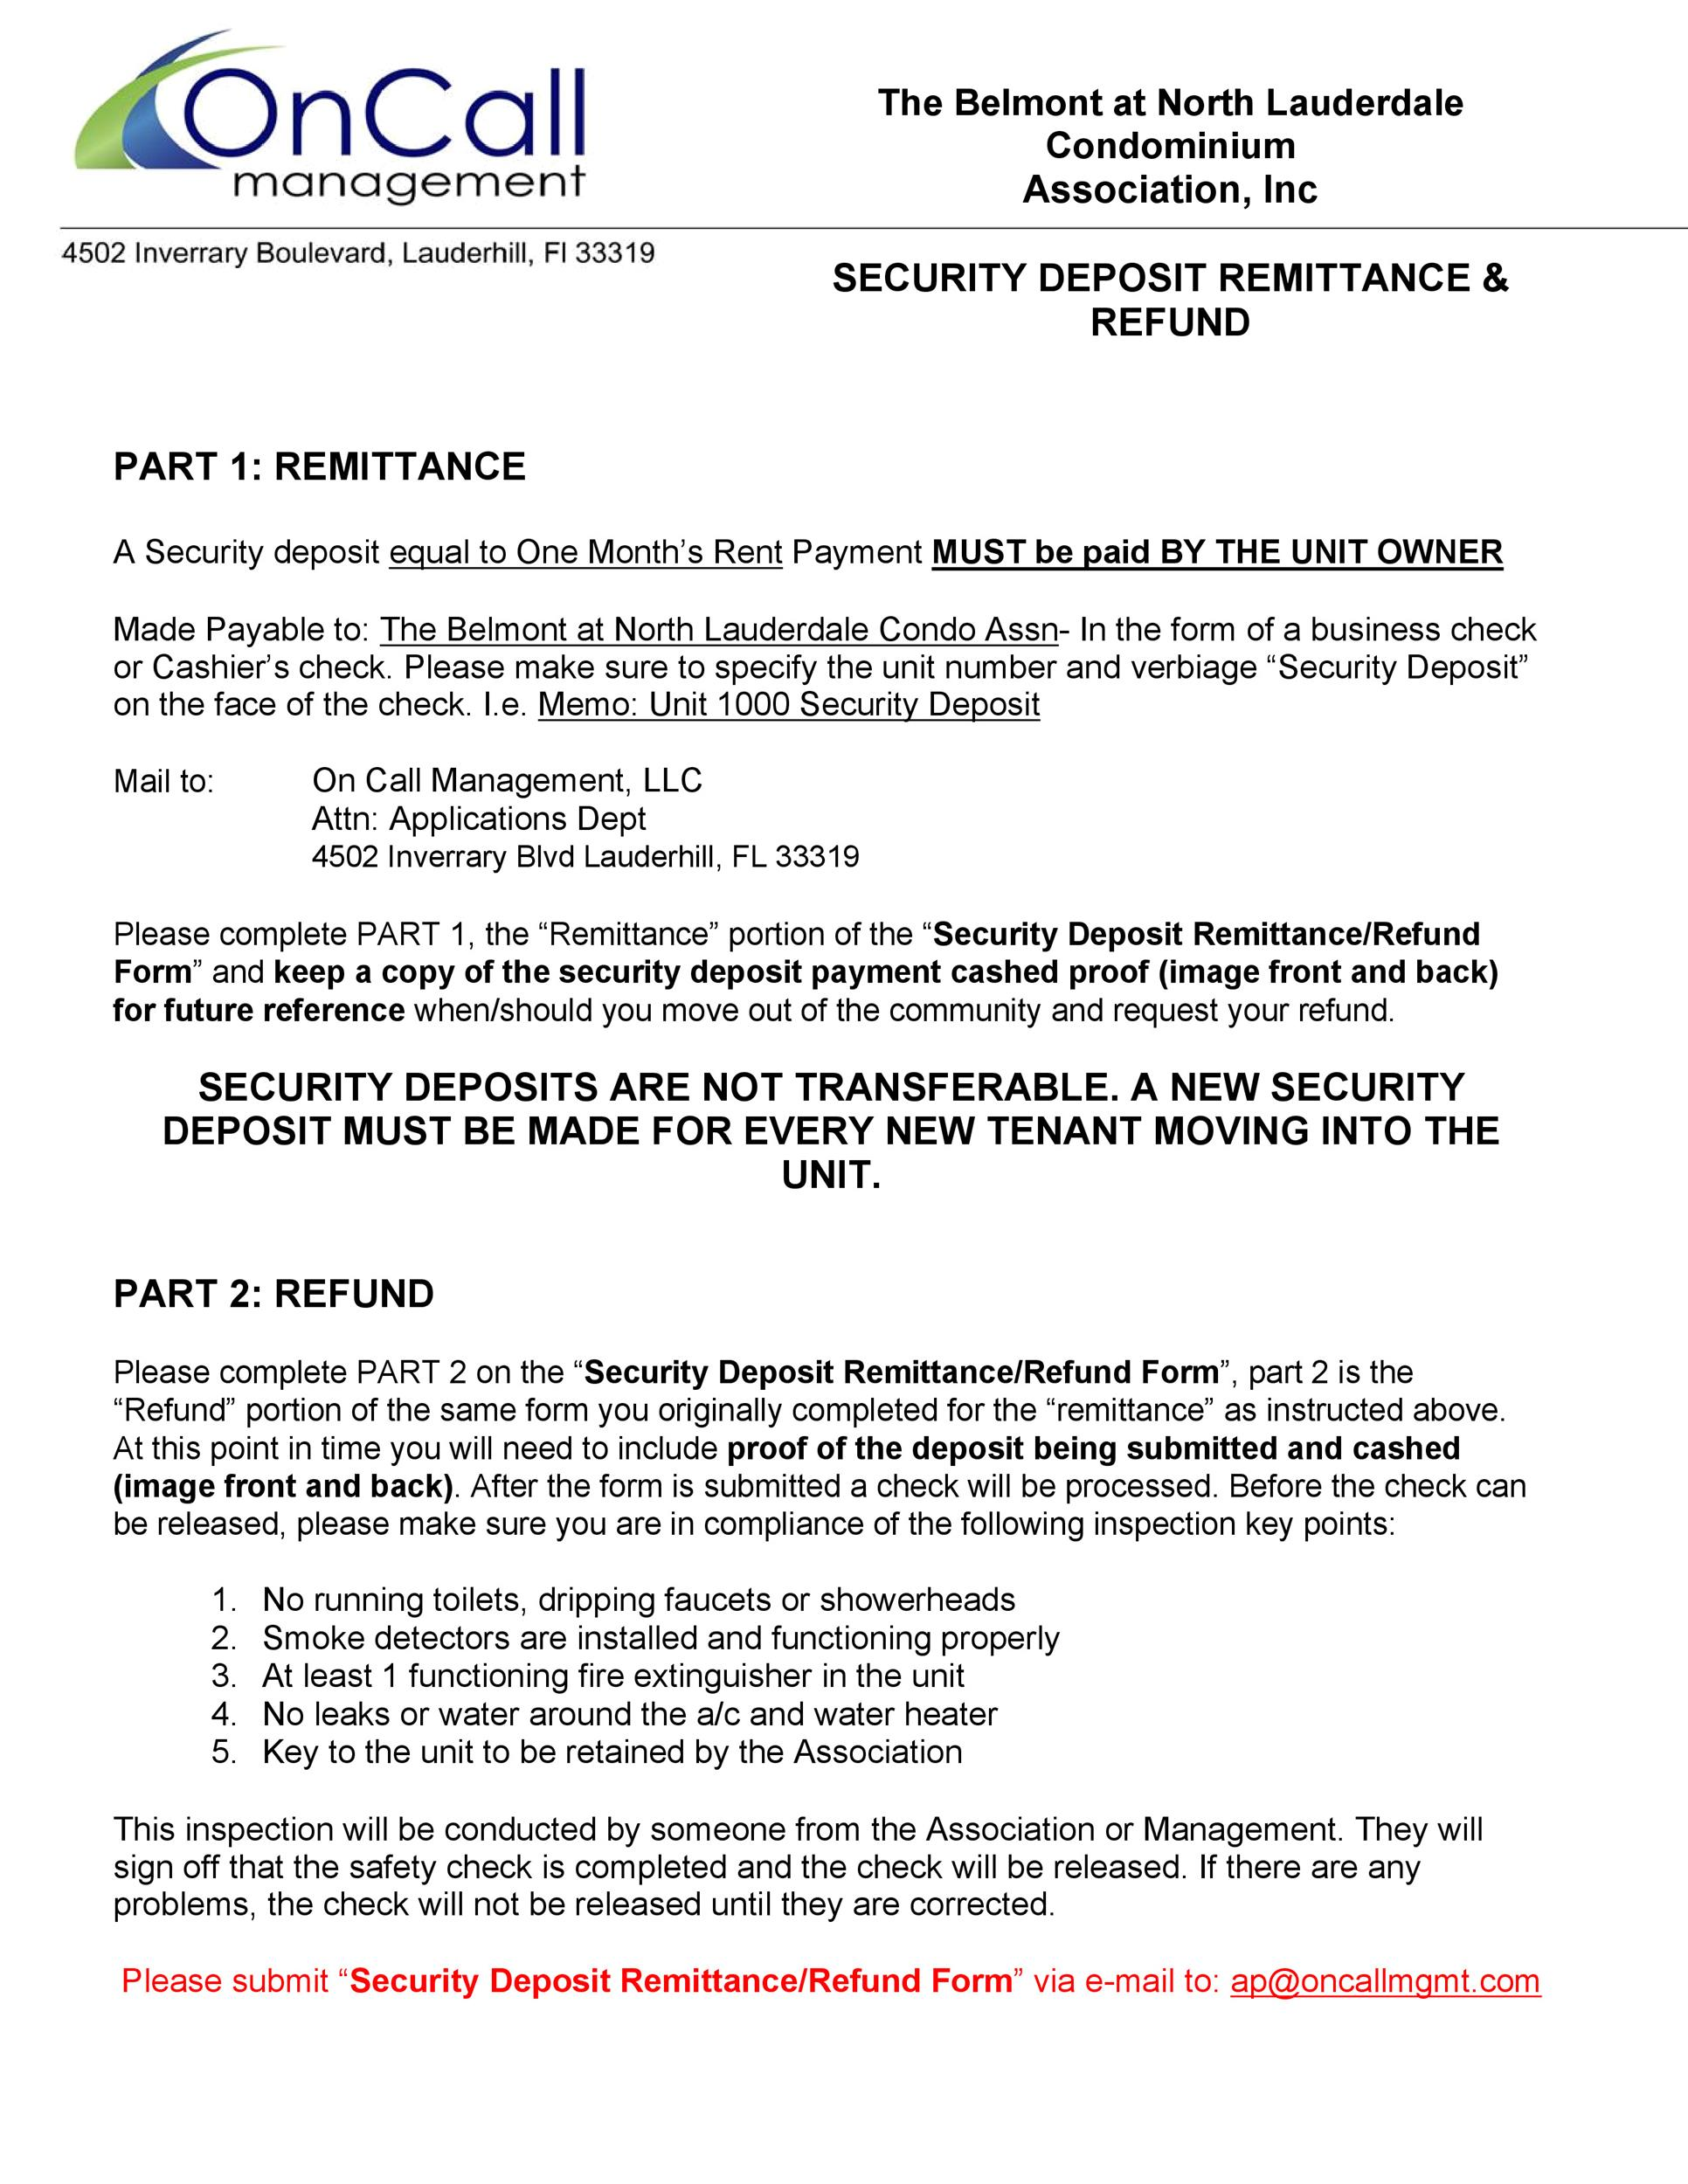 50 Effective Security Deposit Return Letters [MS Word] ᐅ